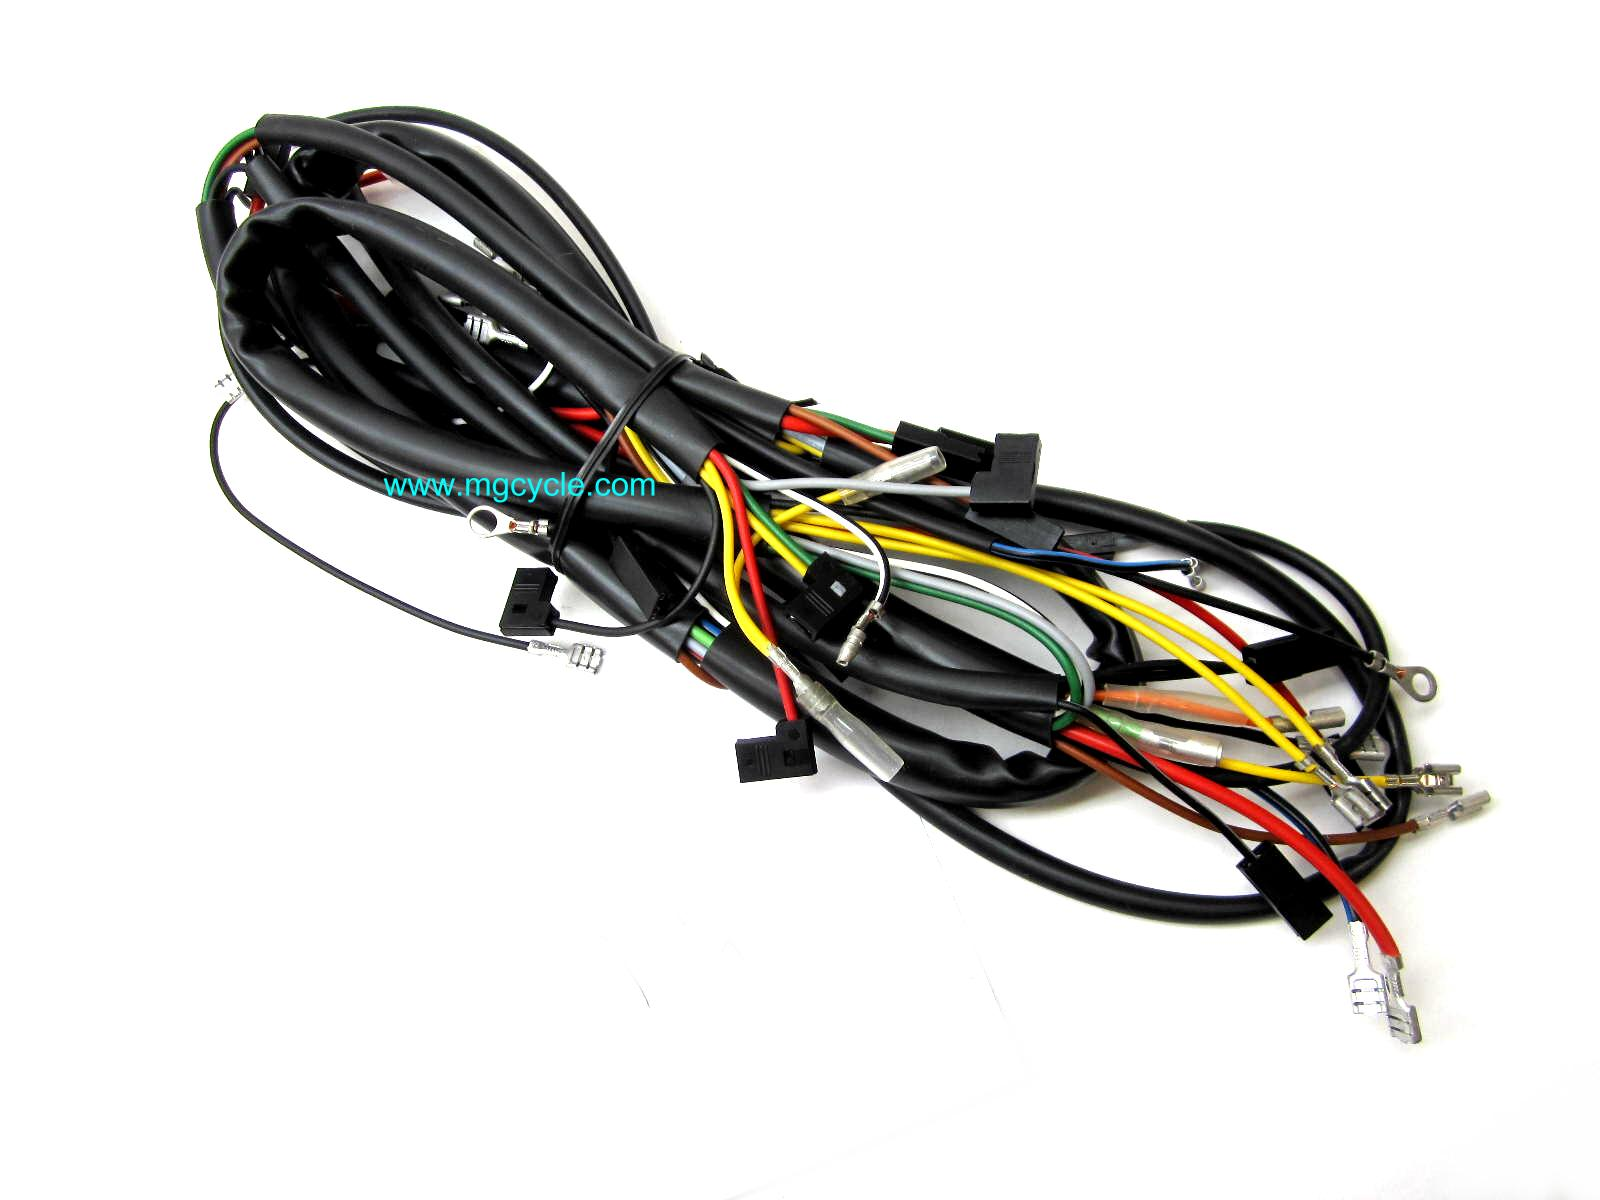 Wiring Mg Cycle Moto Guzzi Parts And Accessories Available Online Main Harness Wire V7 Sport 750s